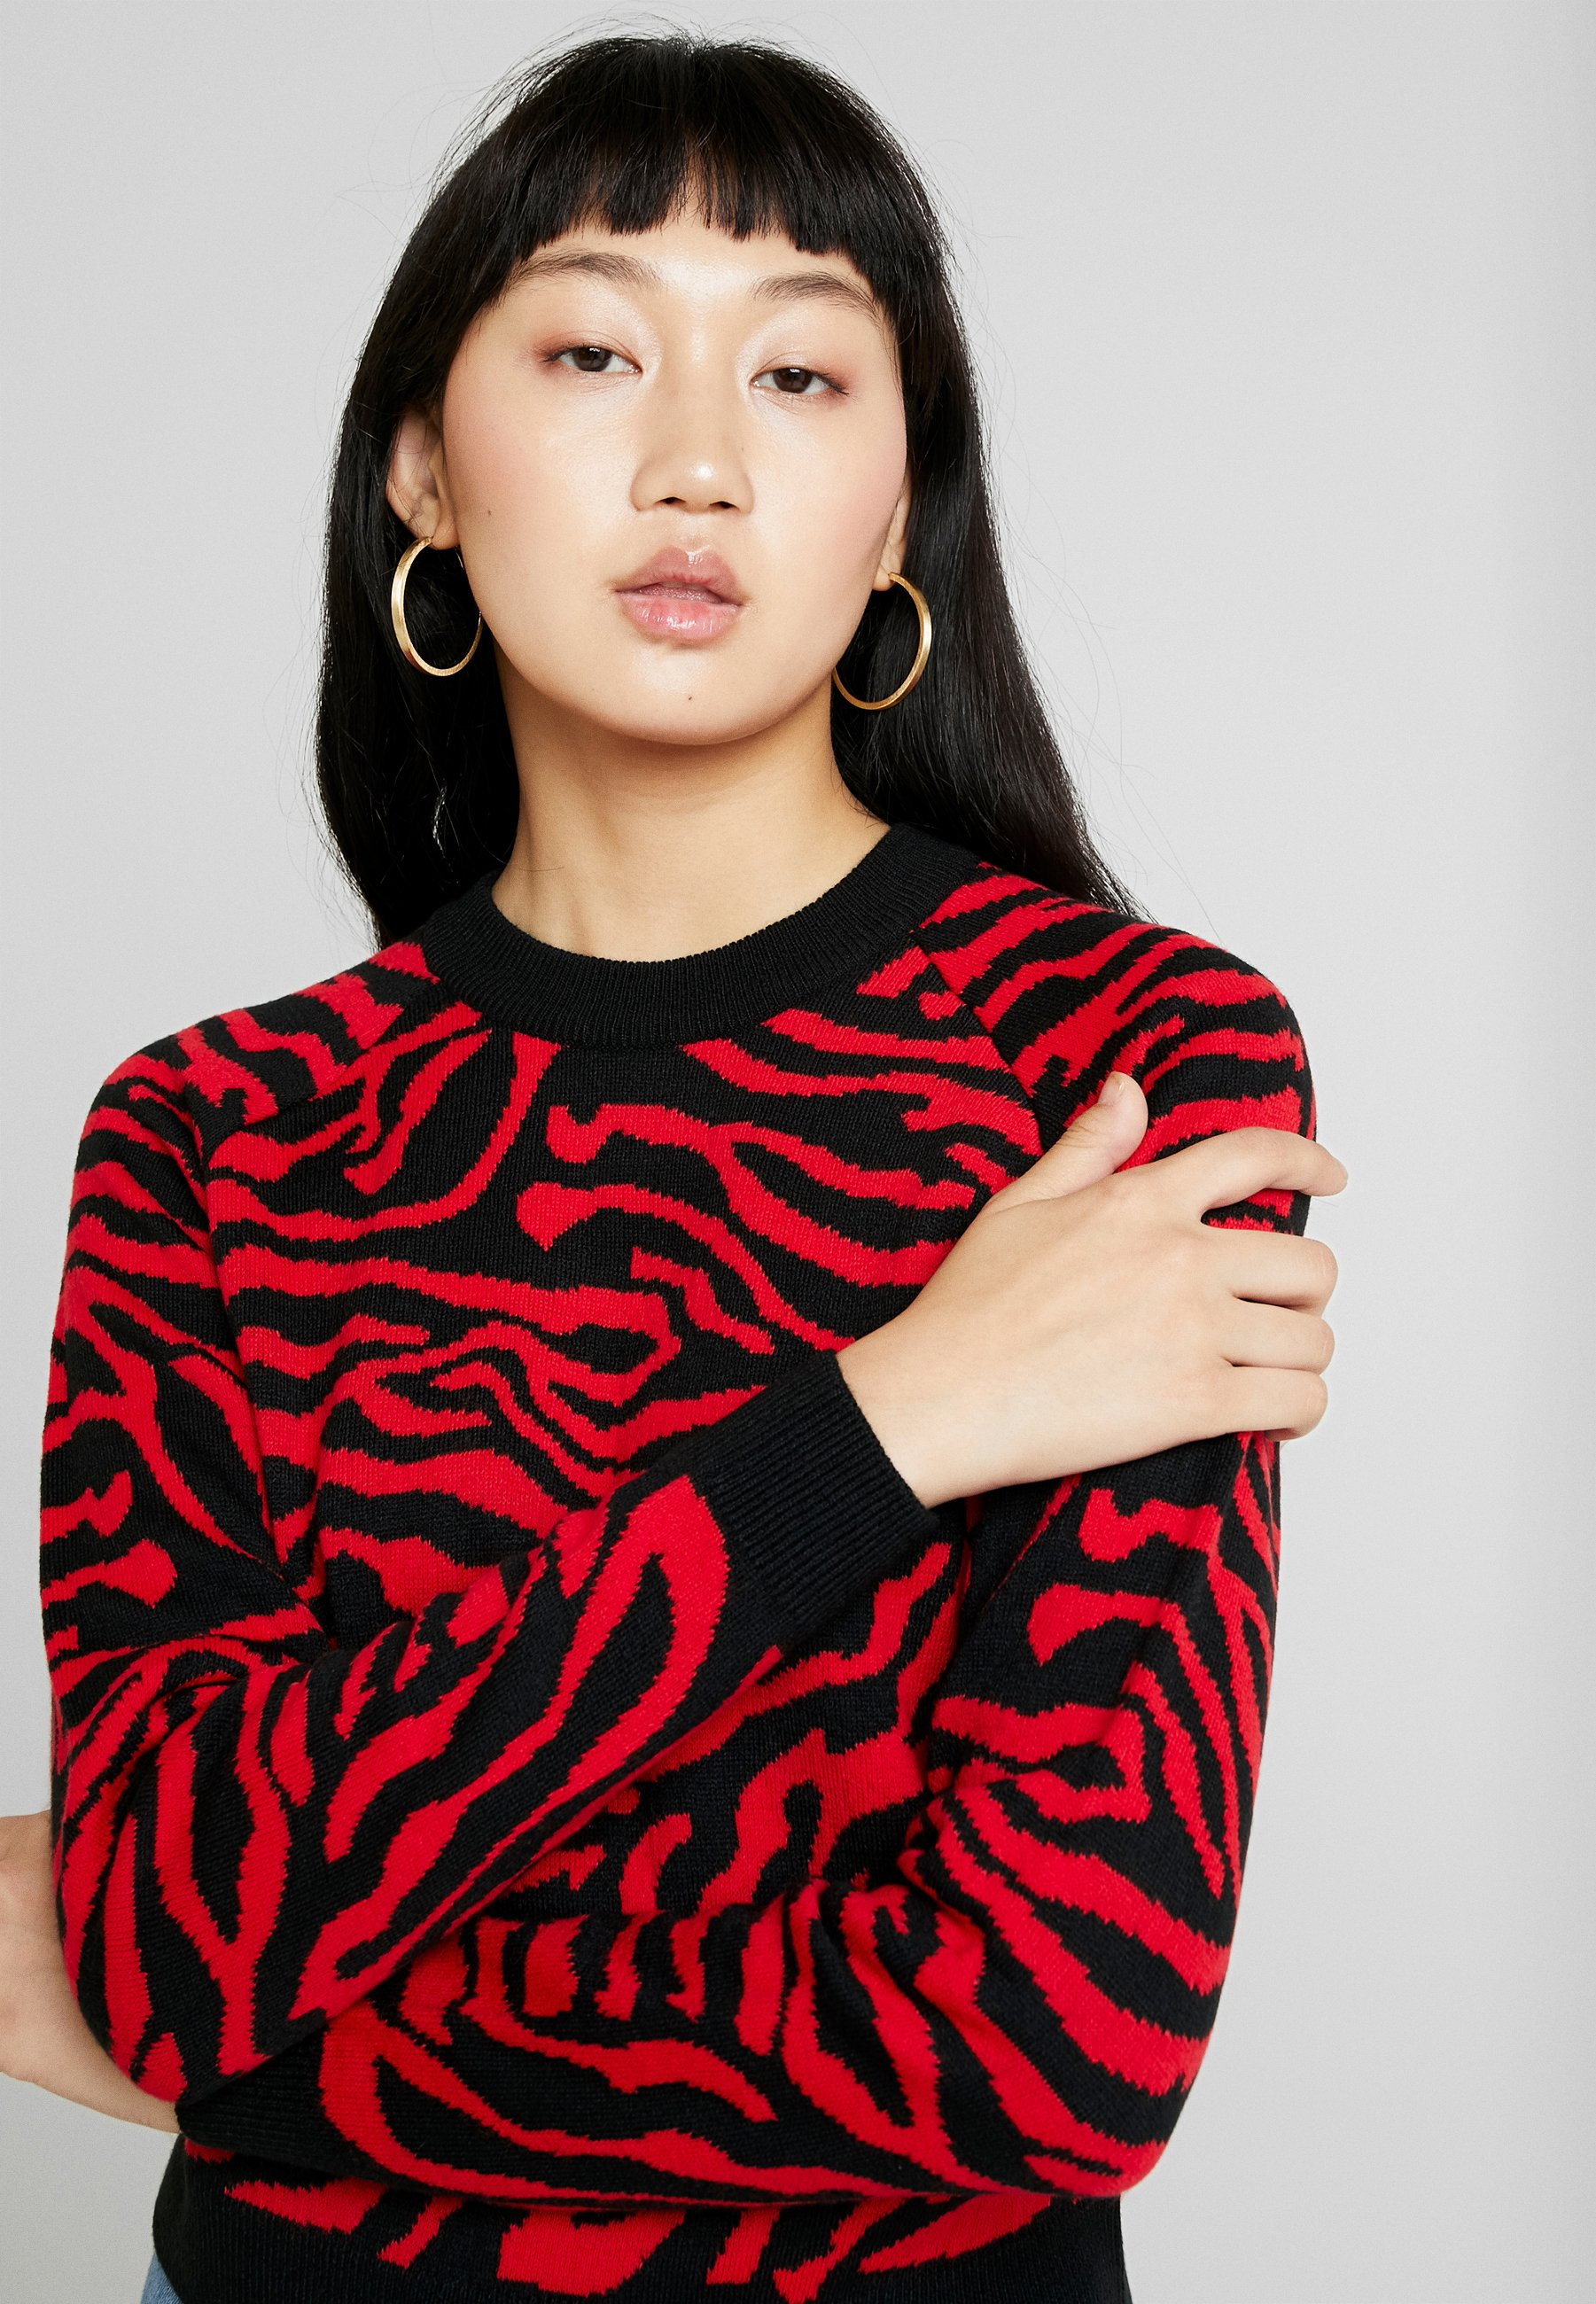 Black Urban Tiger Classics SweaterMaglione firered Ladies b7Yyf6g